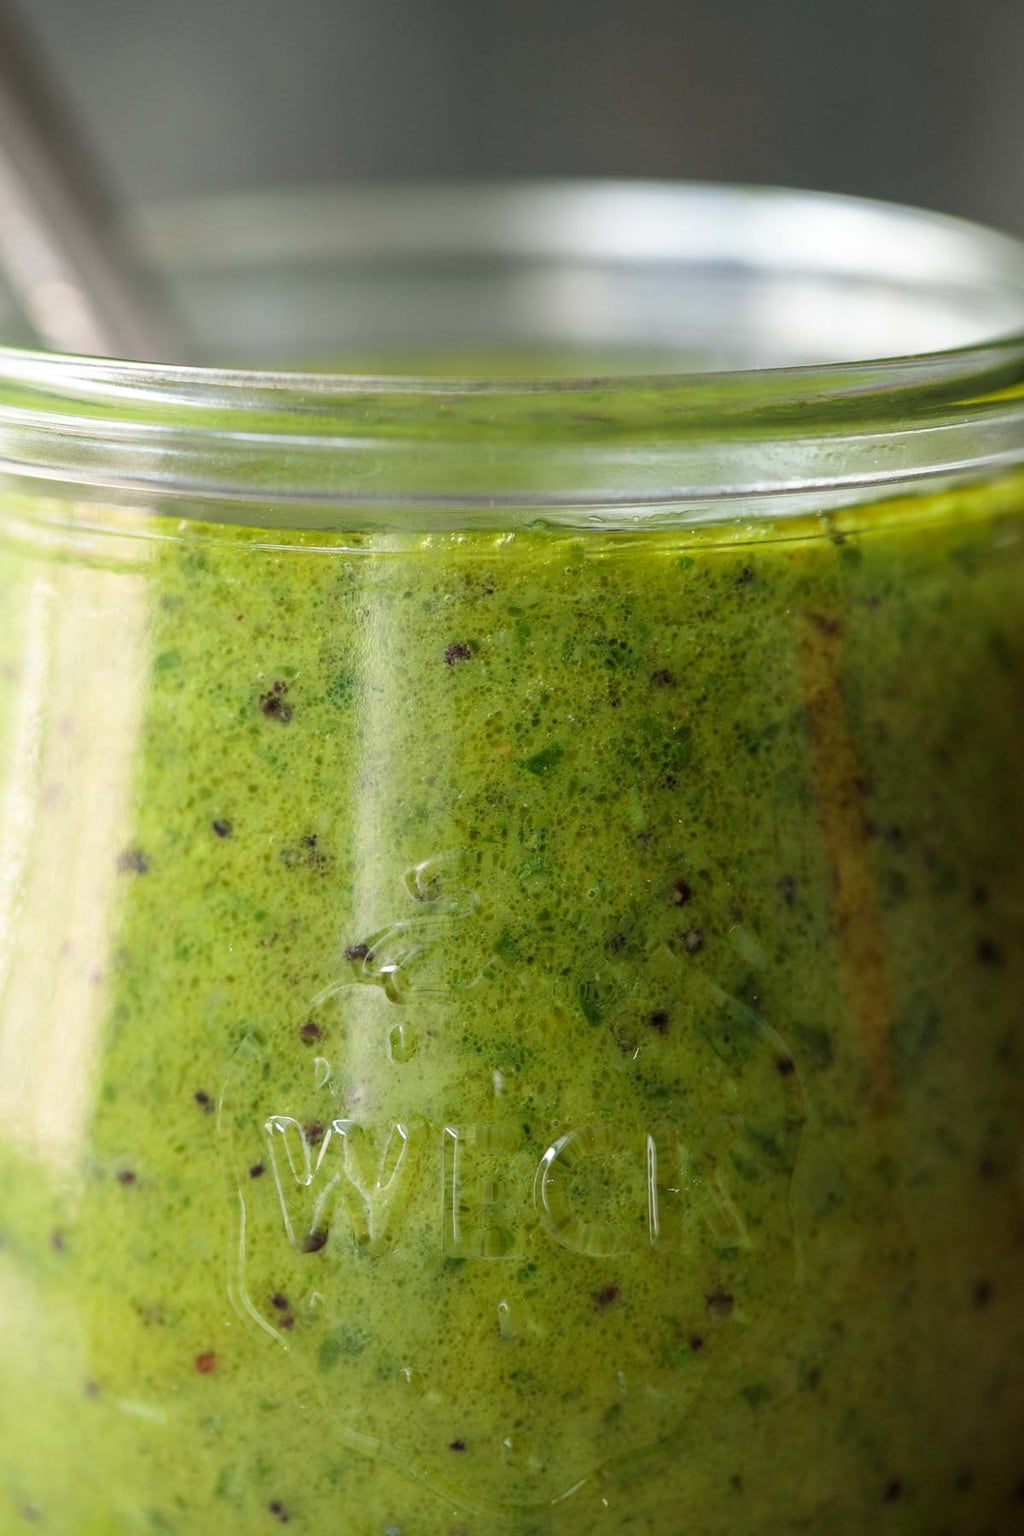 Closeup photo of a glass jar of Lemon Basil Poppy Seed Dressing.